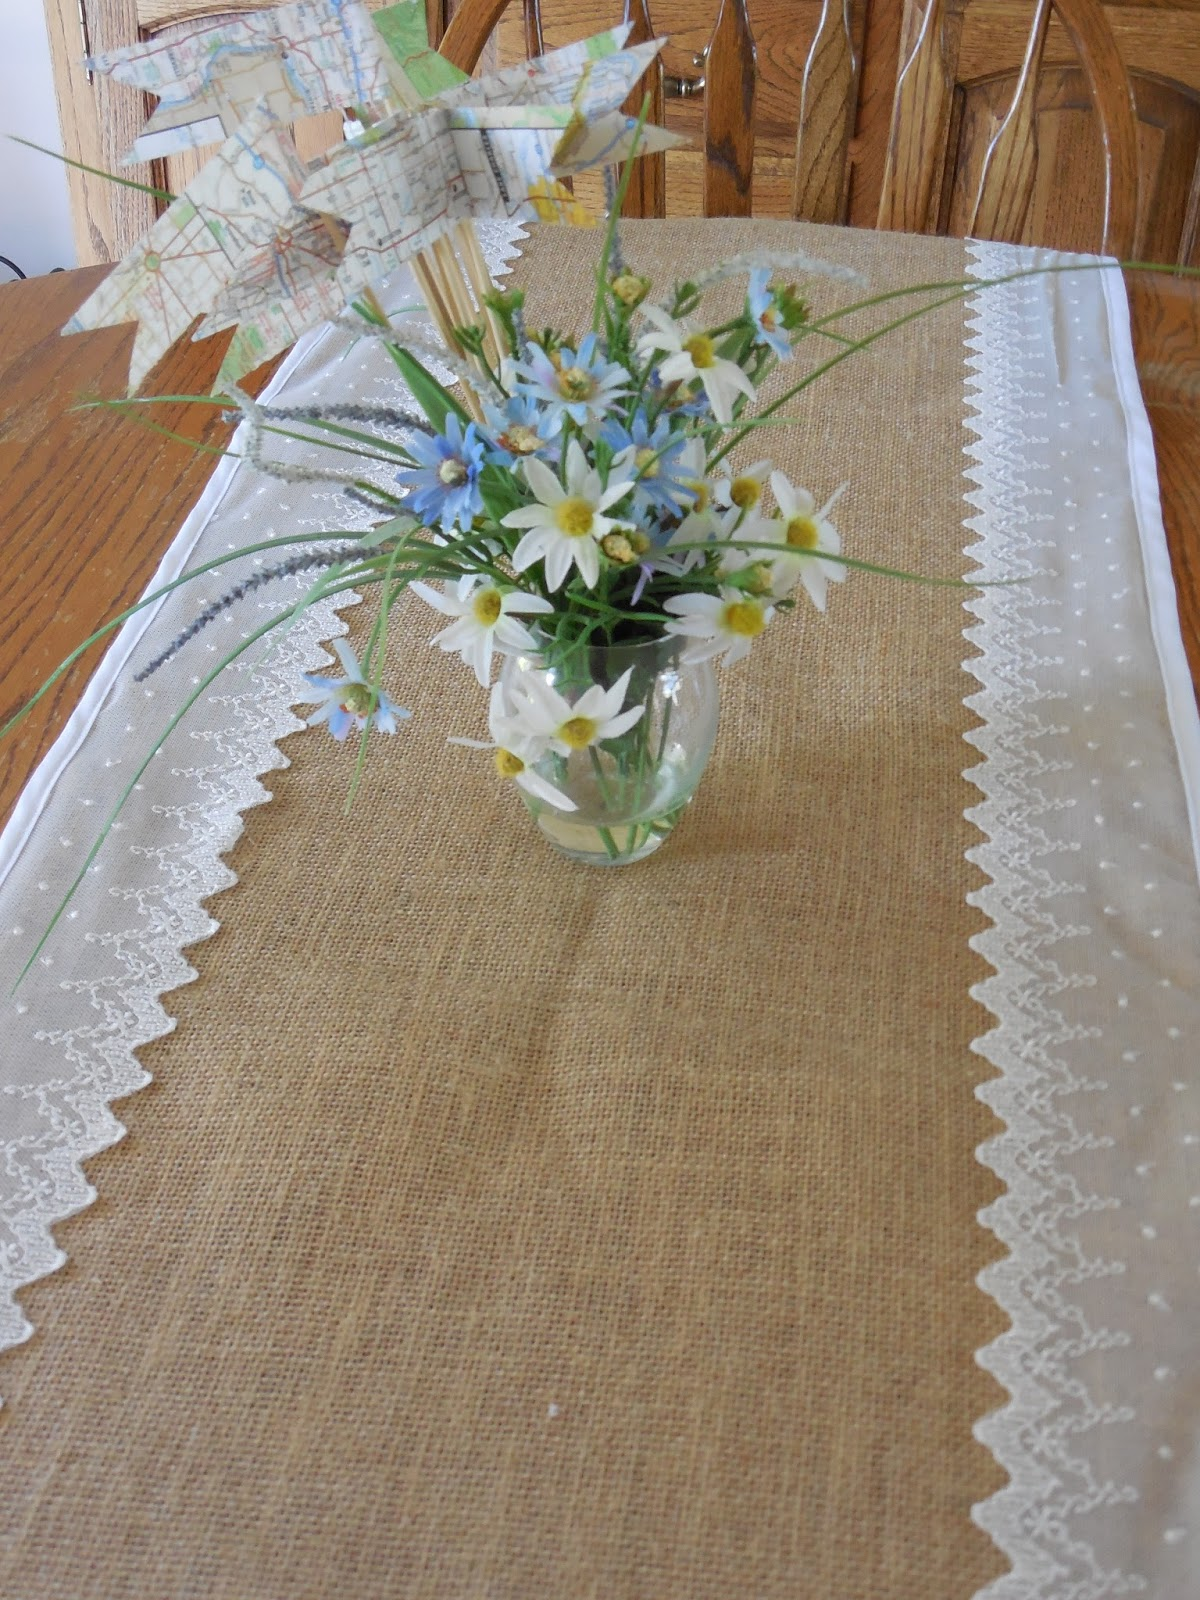 Fabric Obsession: BURLAP & LACE TABLE RUNNER TUTORIAL